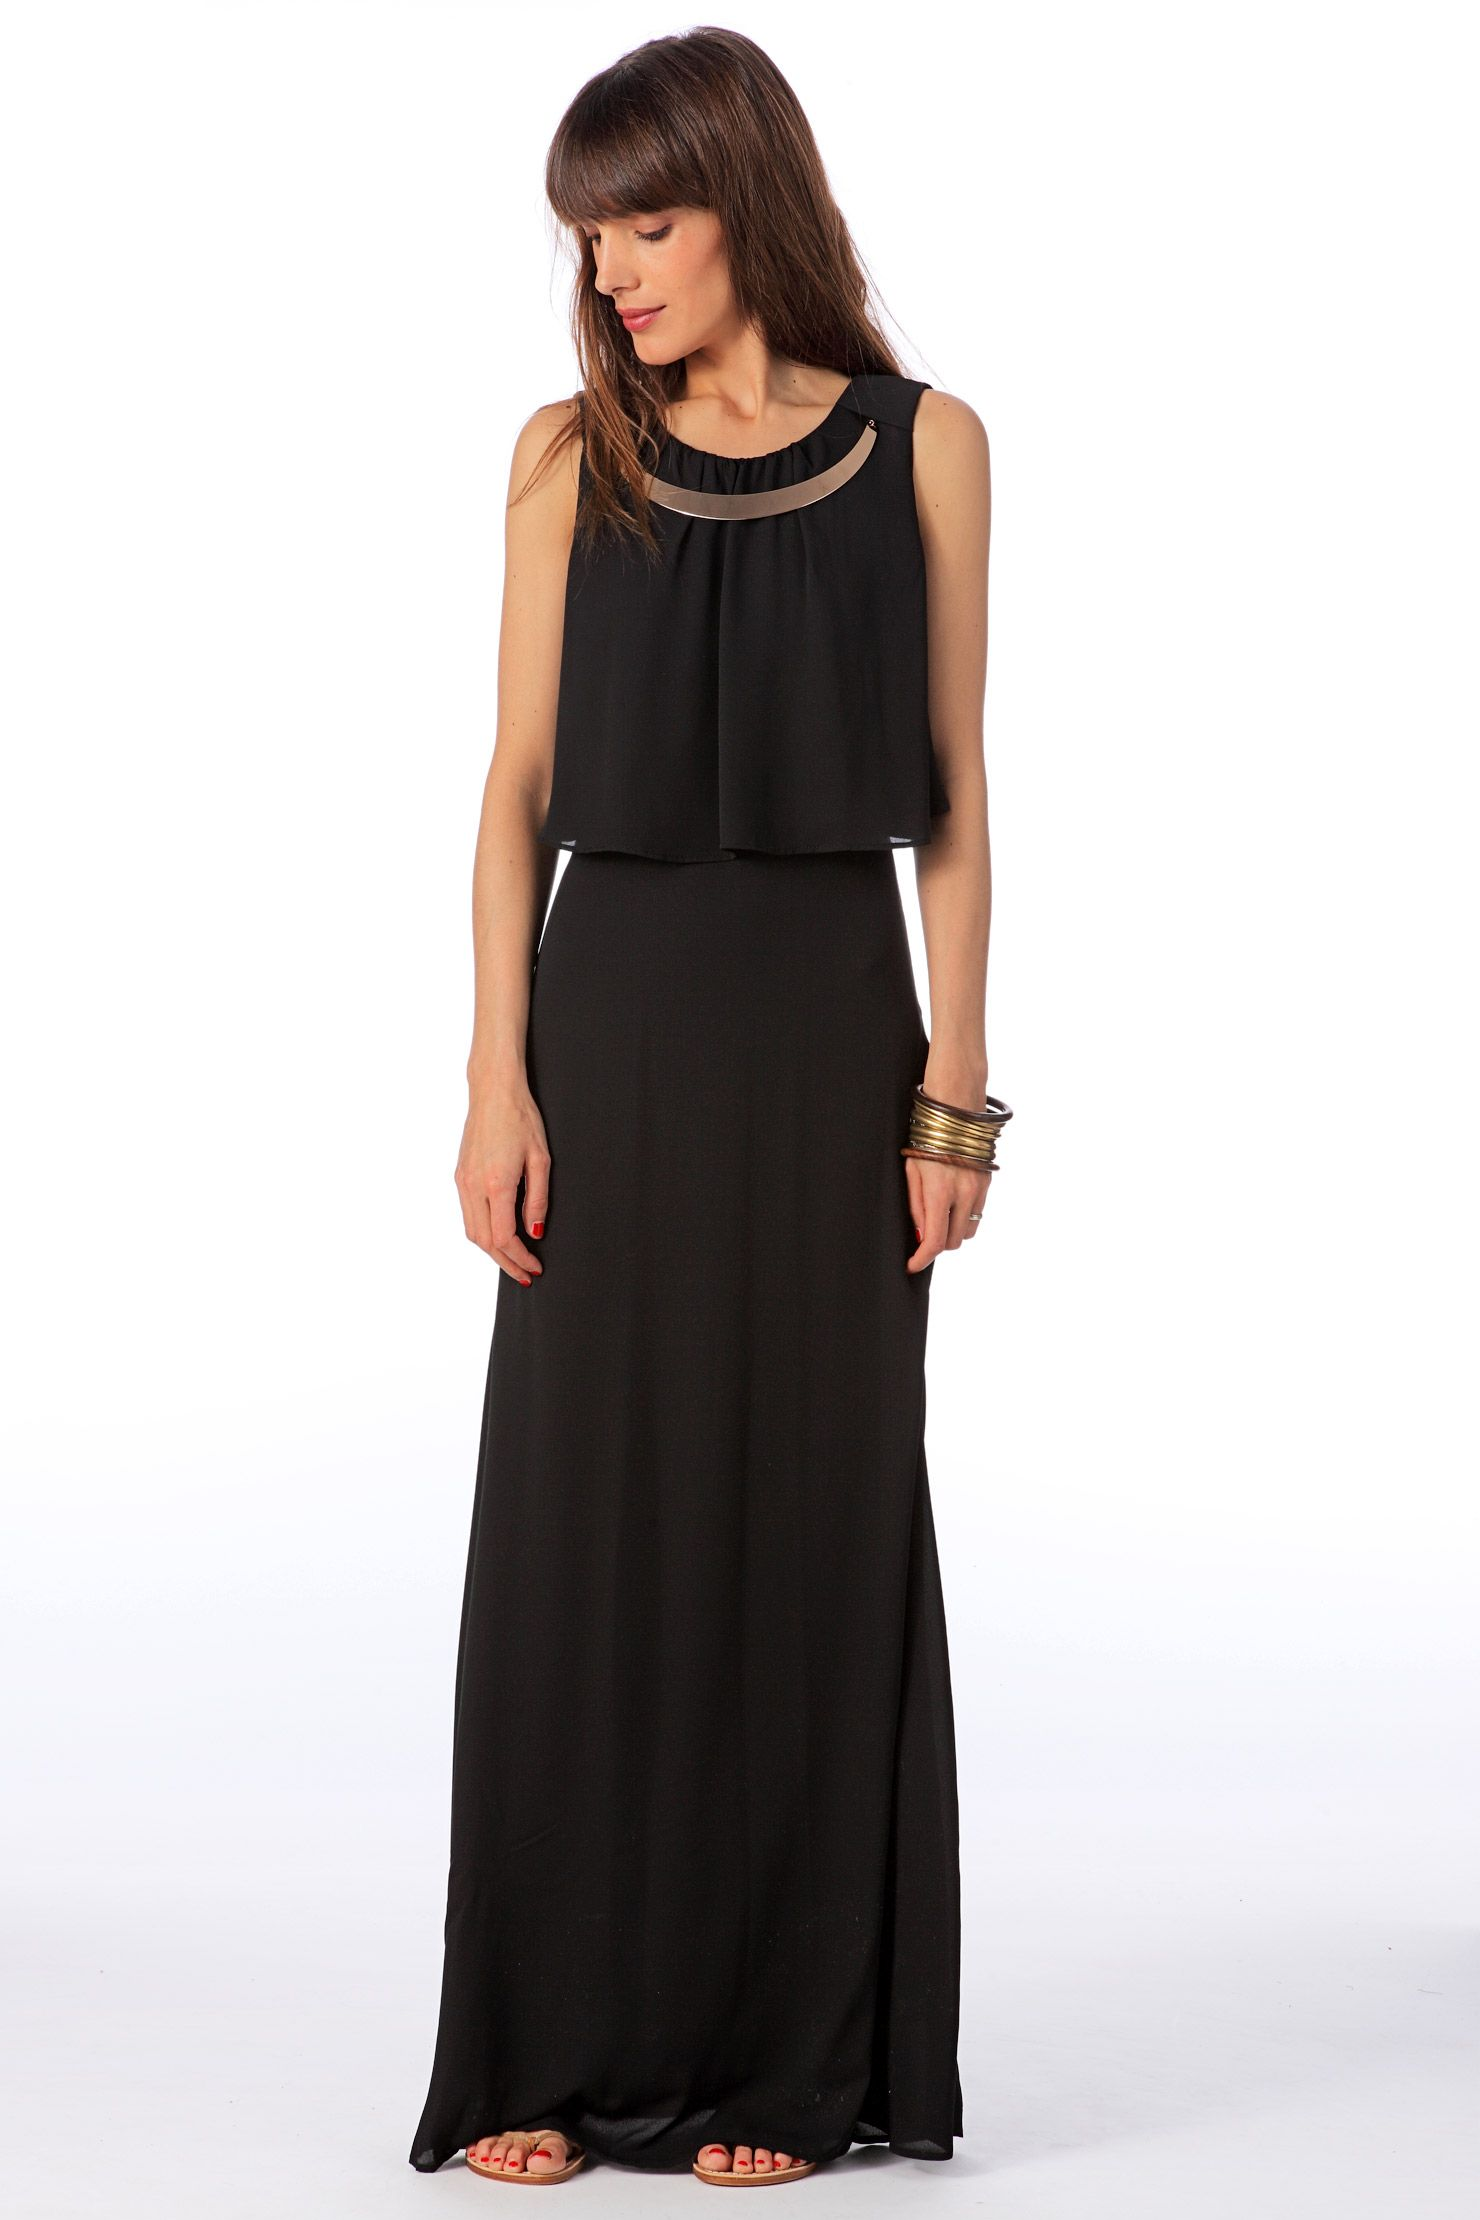 c3530a7d7 Vestido largo - siraz sl long dress km - Negro Vero Moda en MonShowroom.com